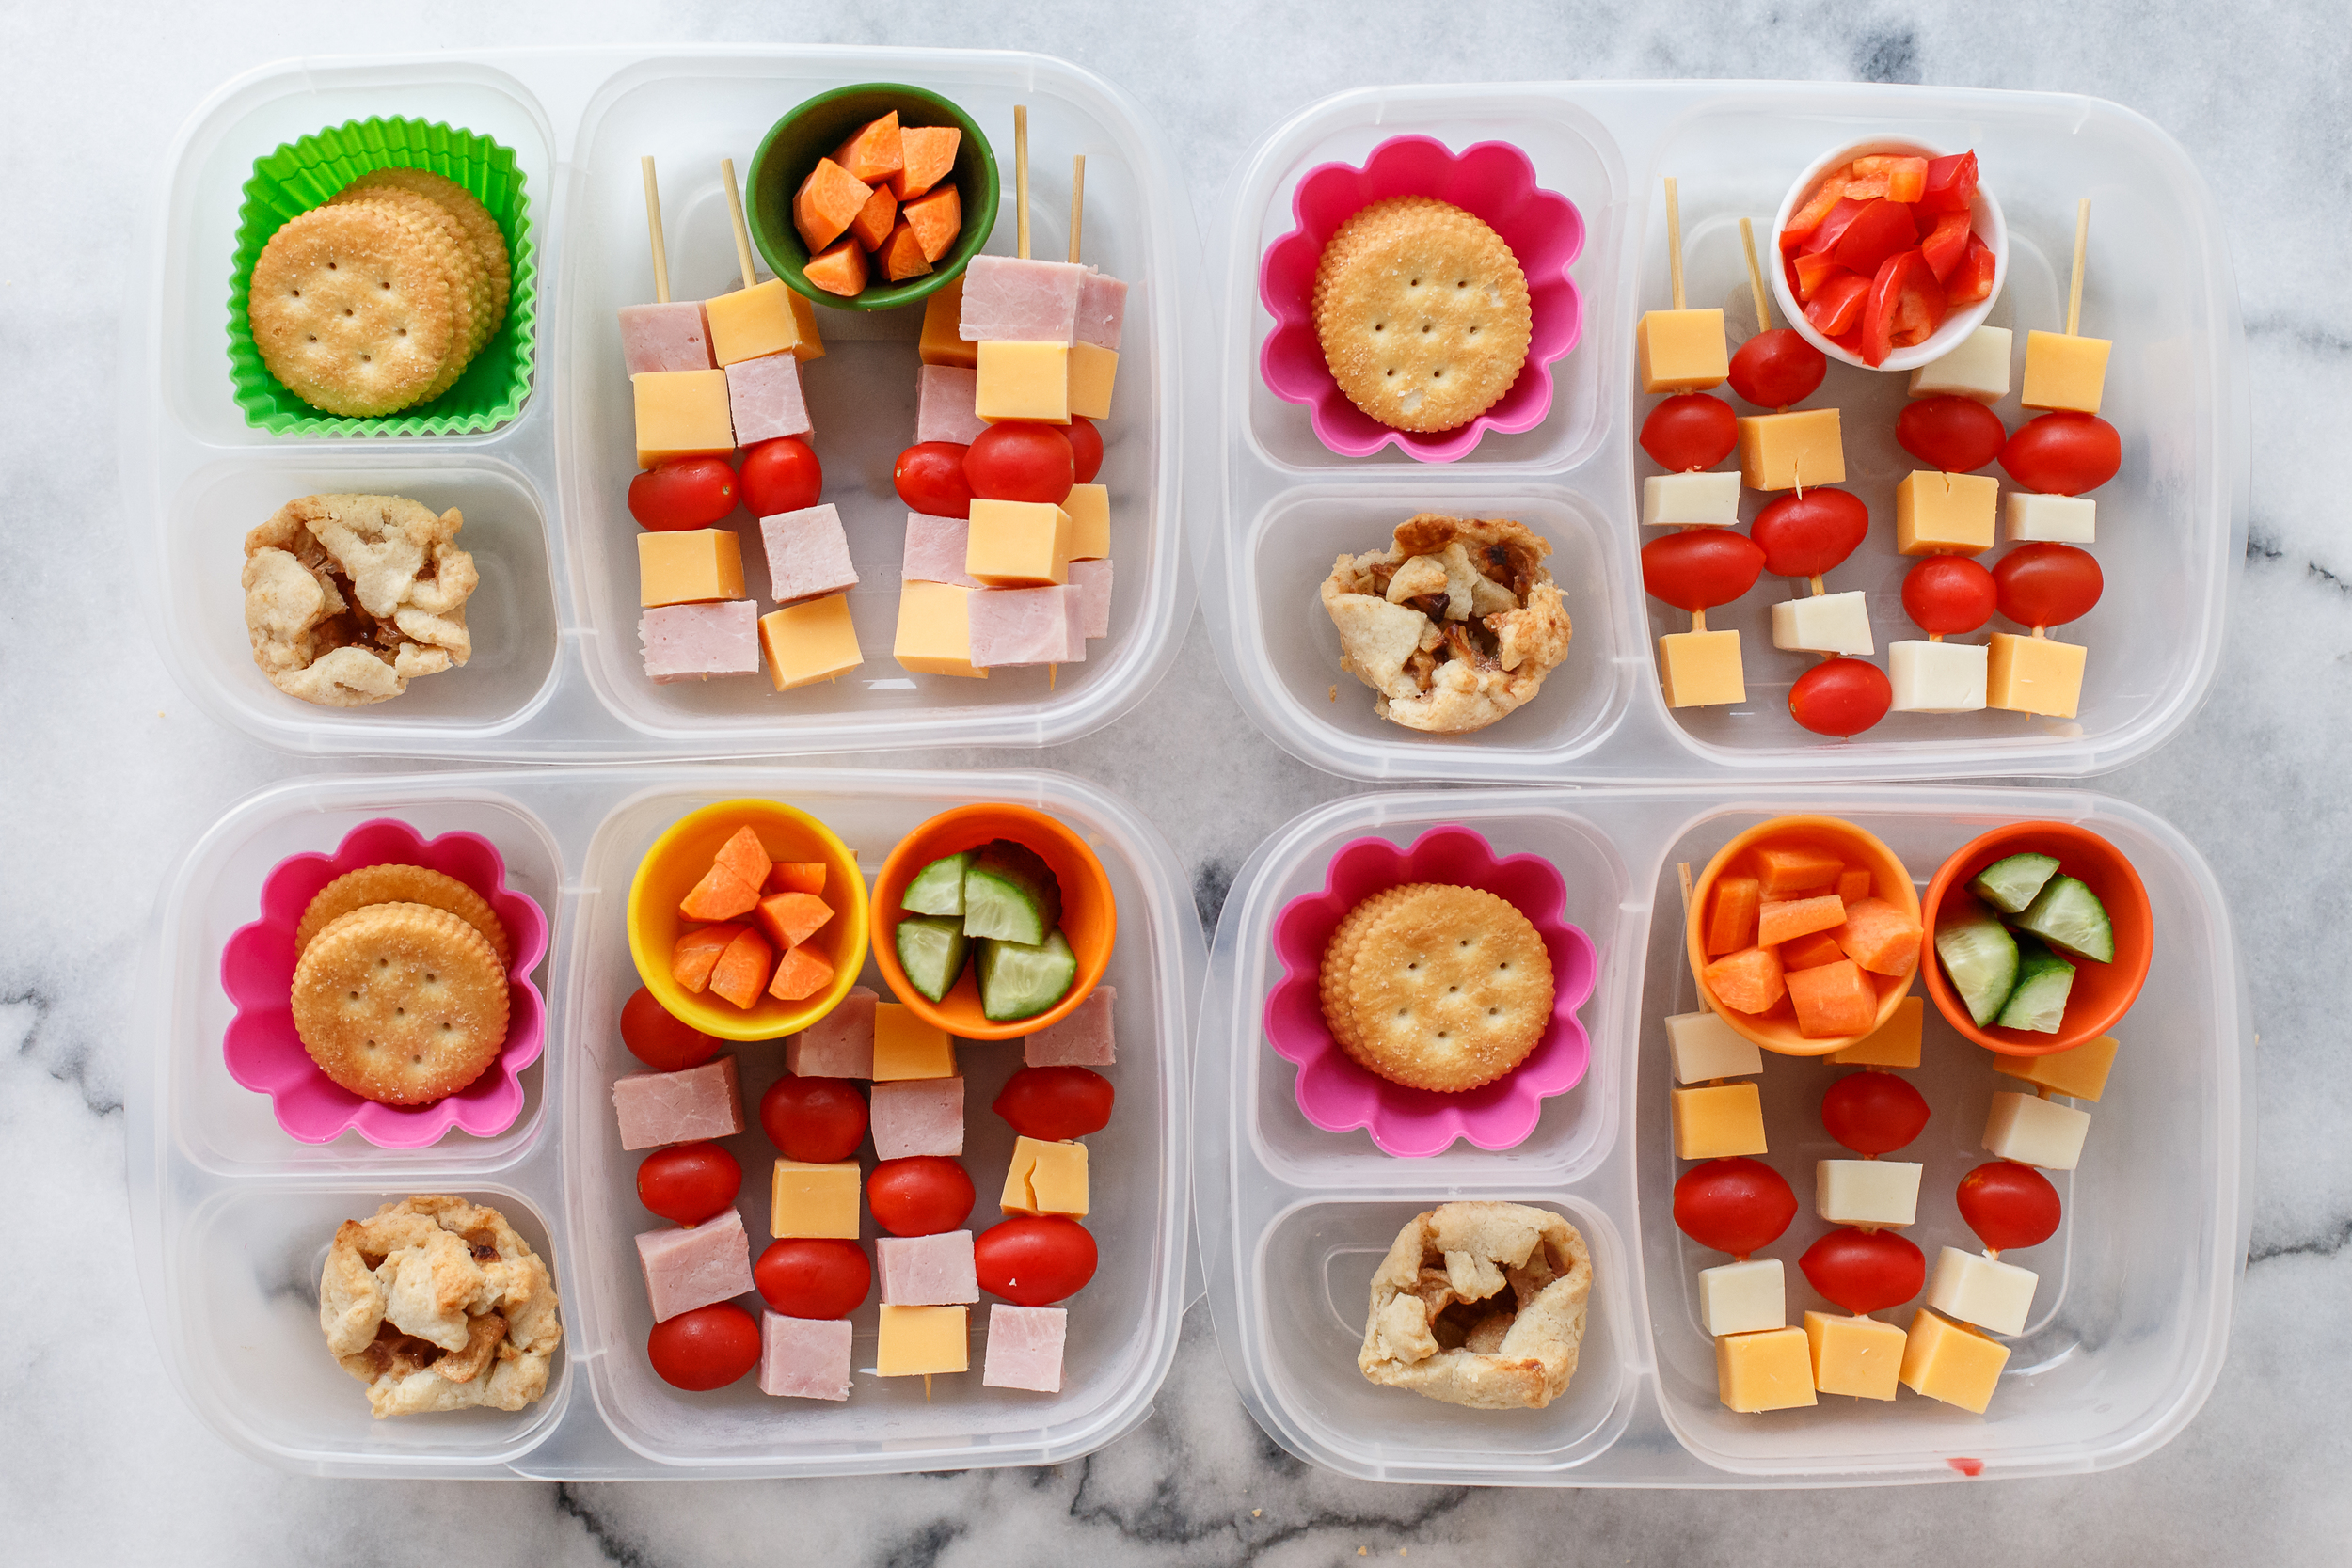 Little skewers of cheese and tomatoes, and ham for the meat eaters. Plus crackers and carrots, cucumbers for two, sweet peppers for one, and a mini apple pie for a special dessert treat!